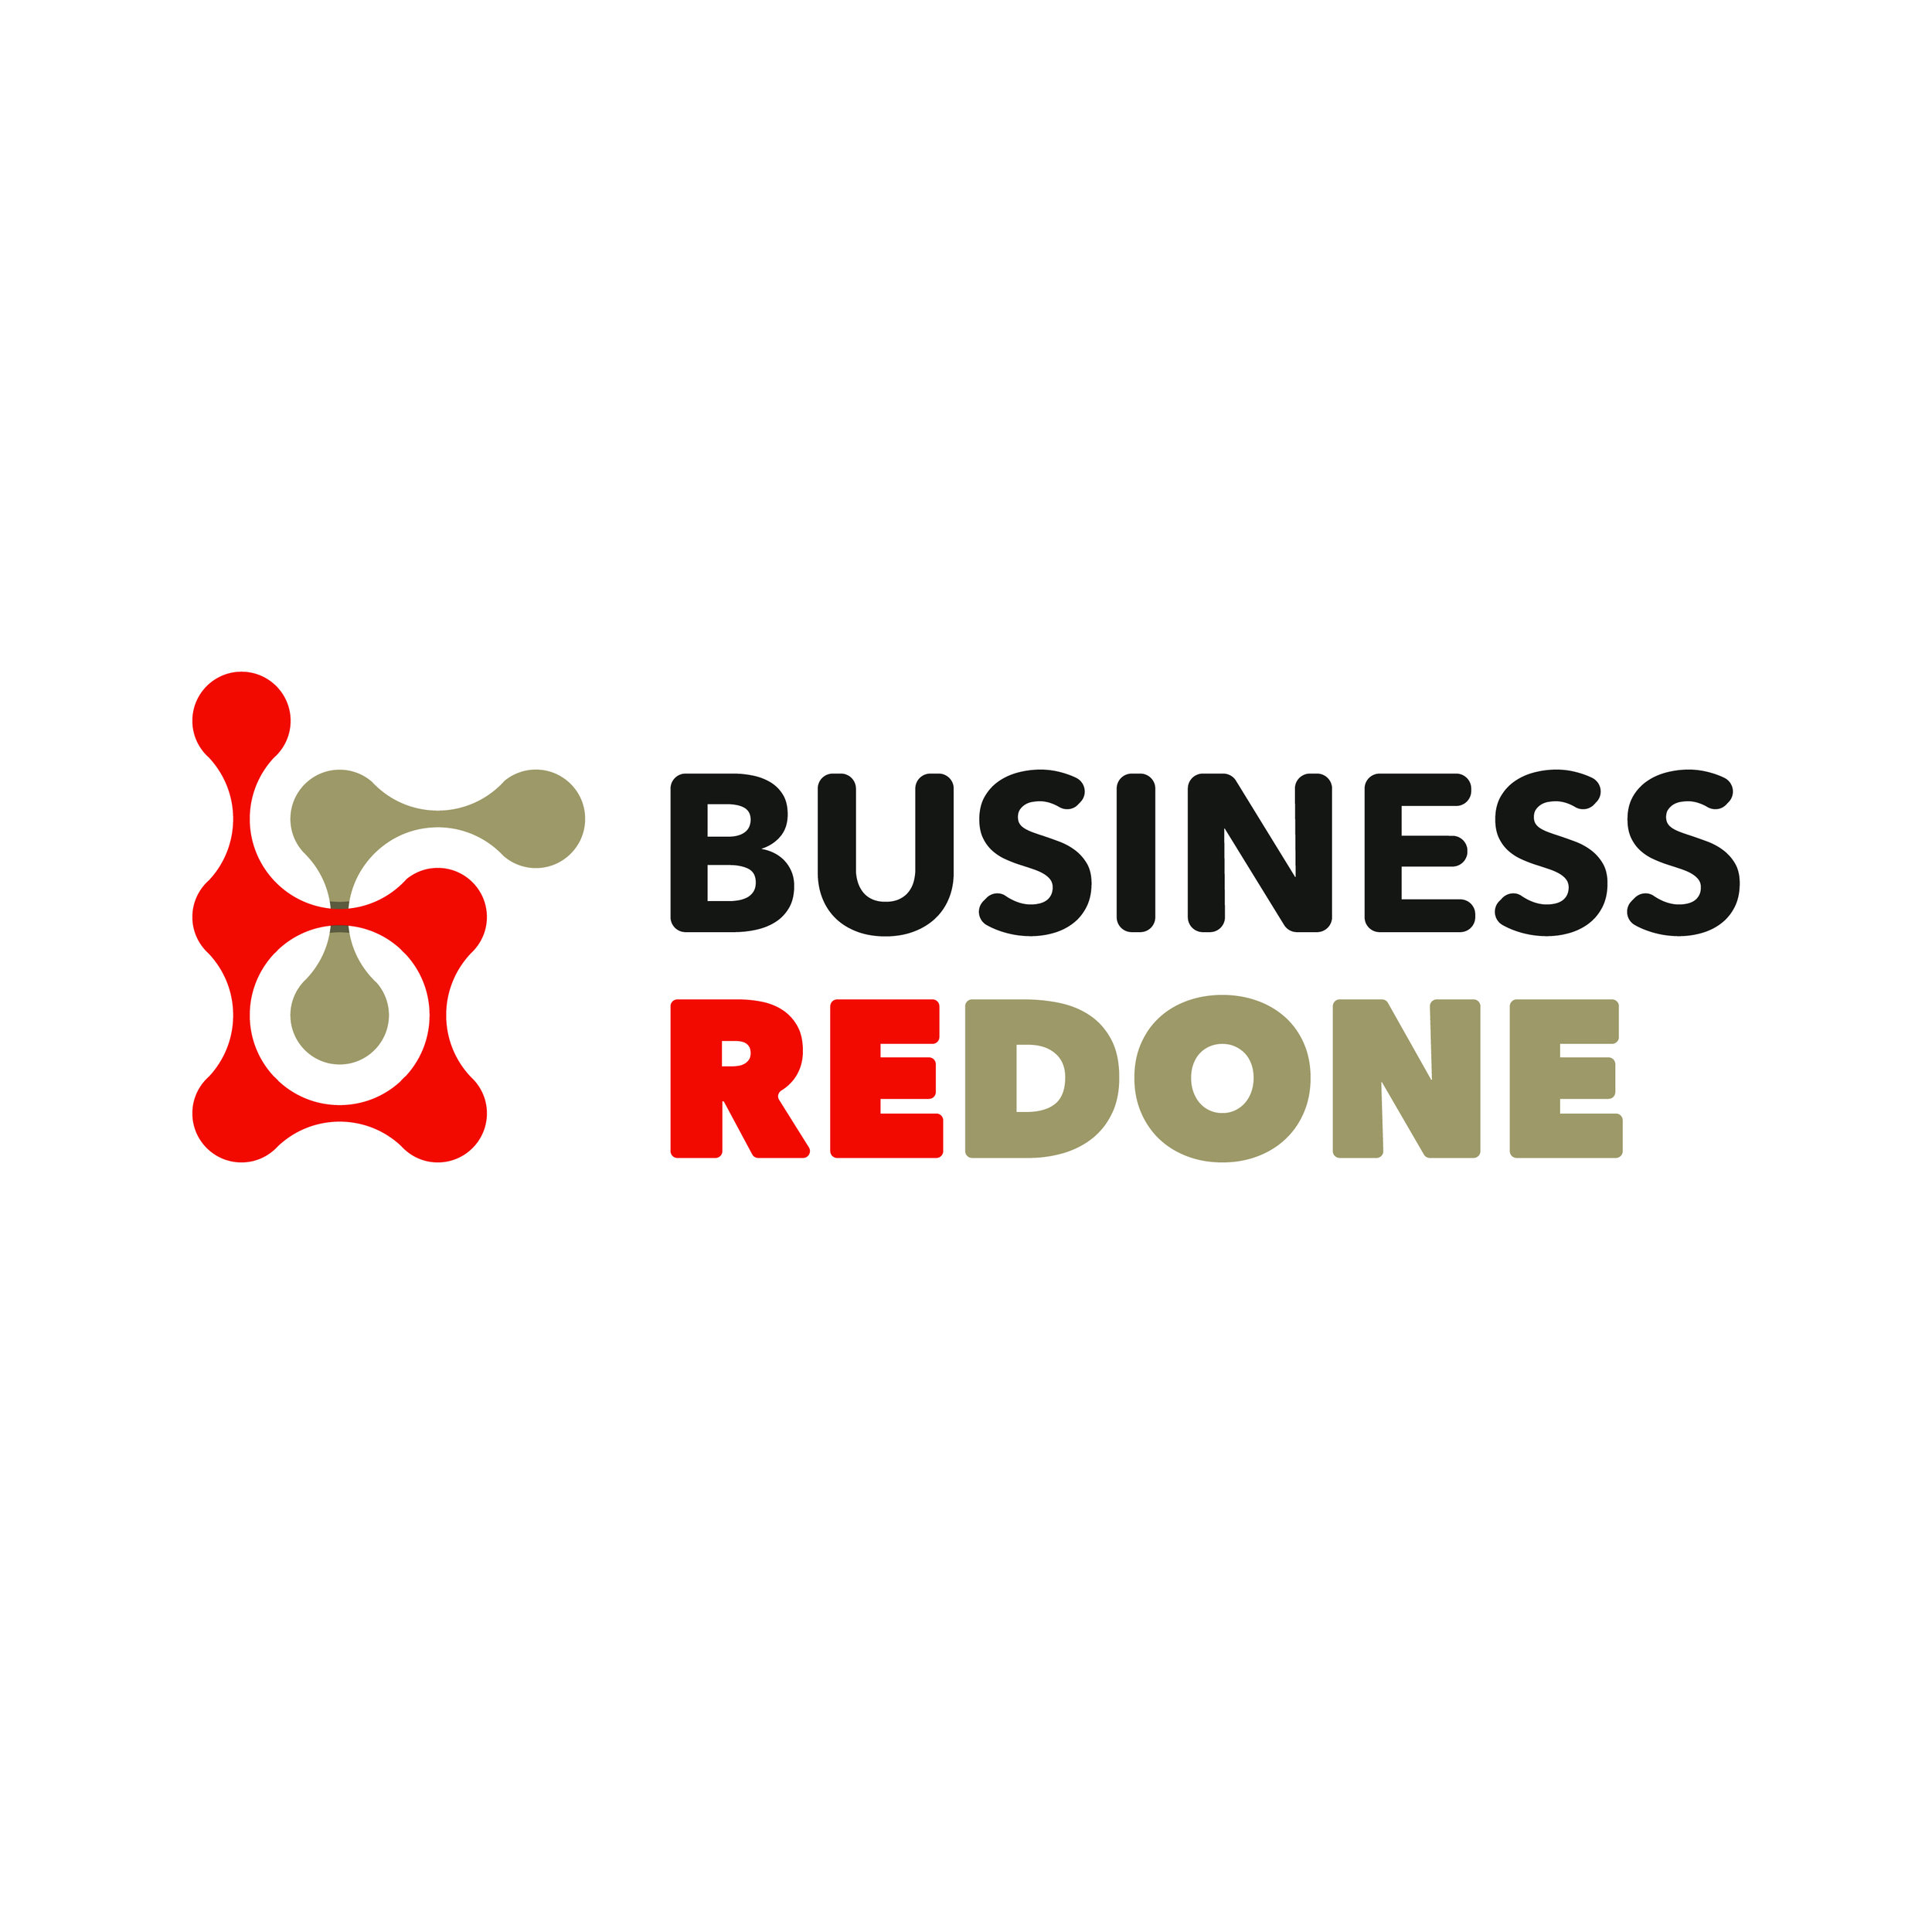 Business-ReDone-Main-01.jpg